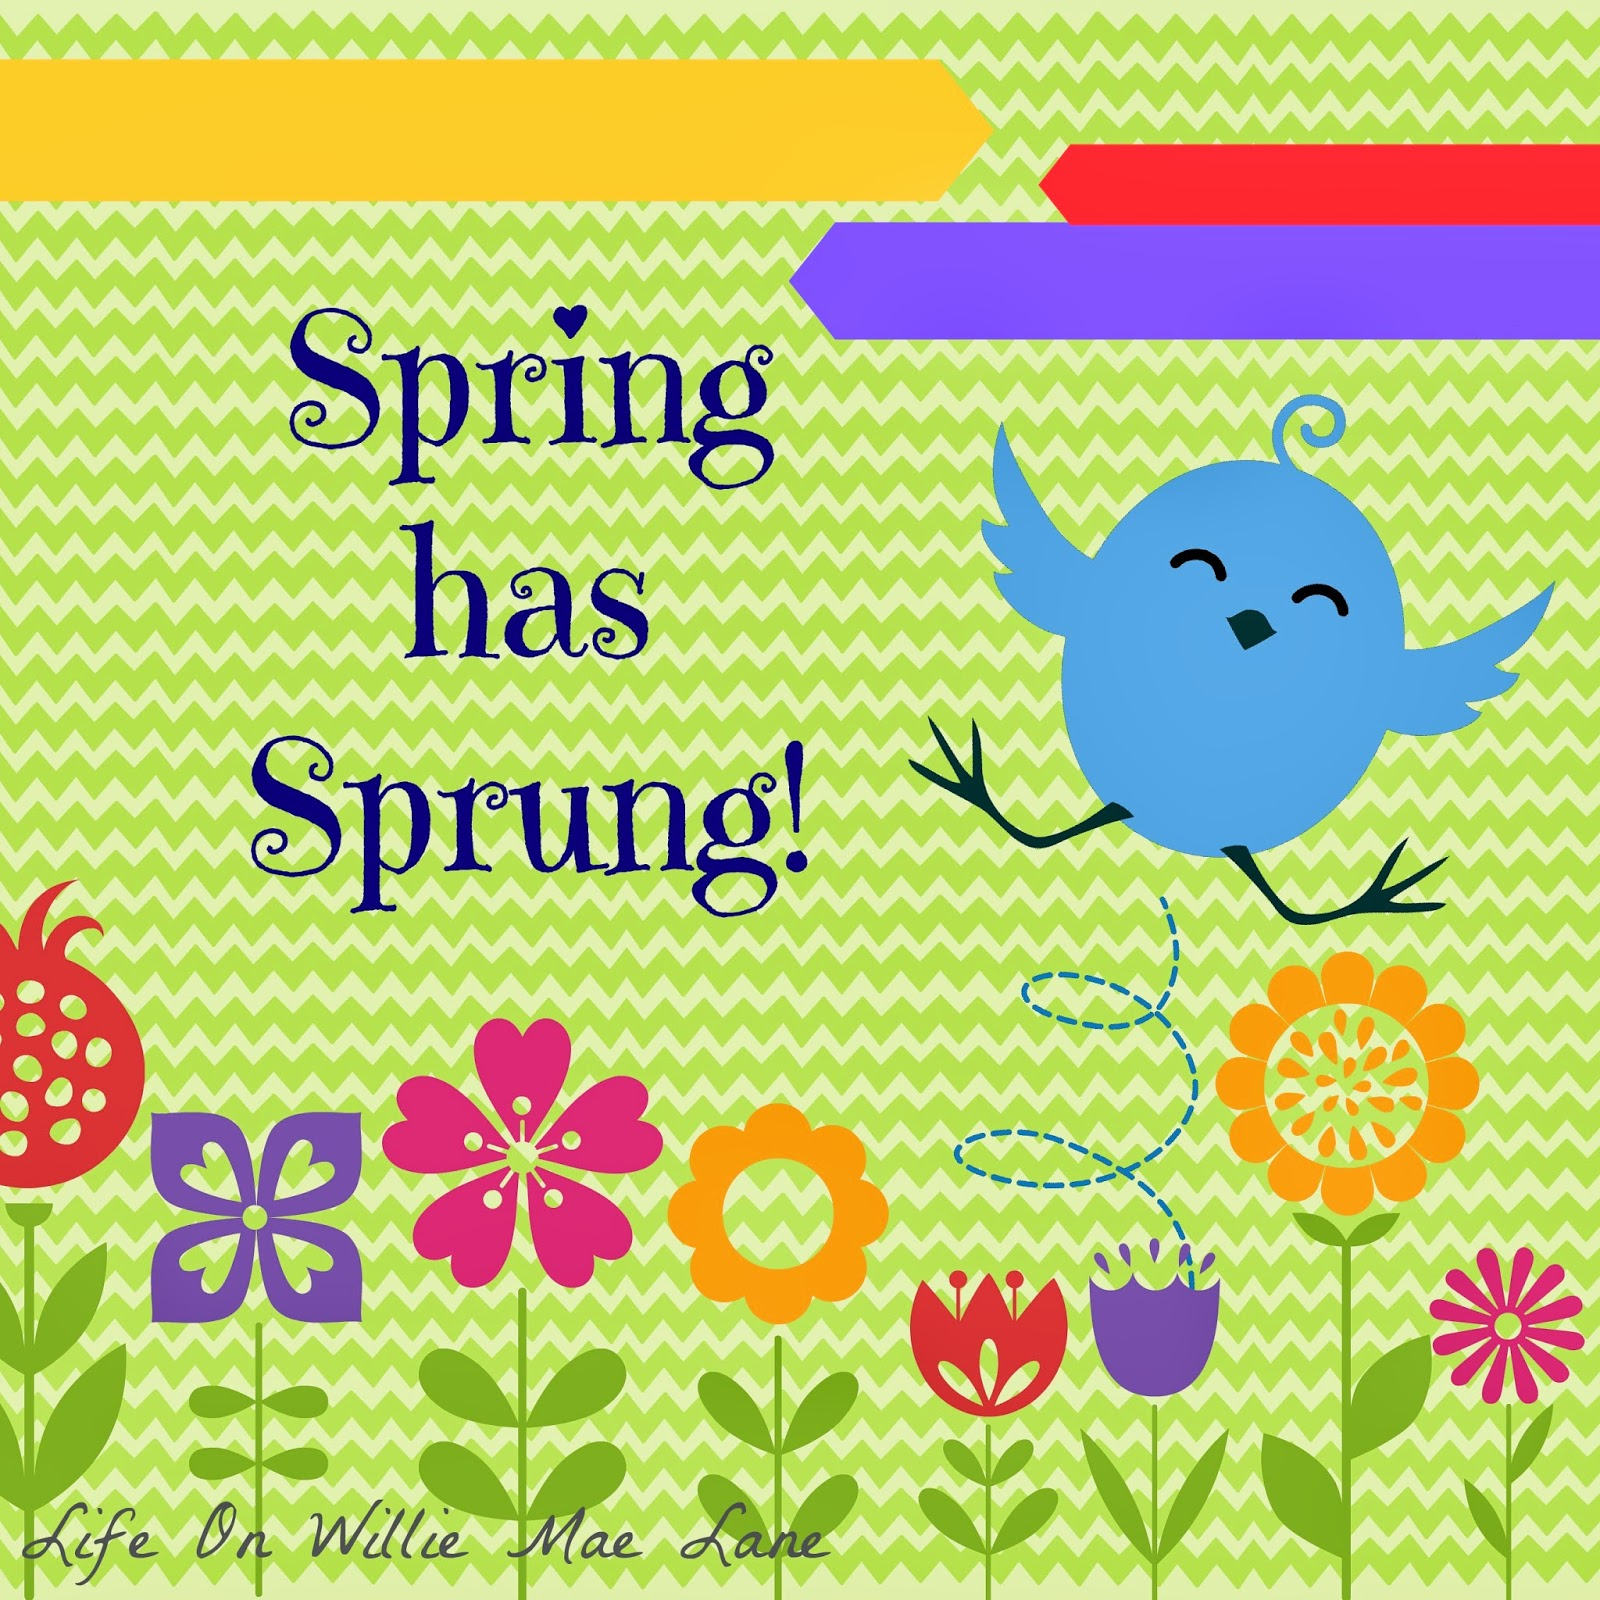 spring weather clipart - photo #11